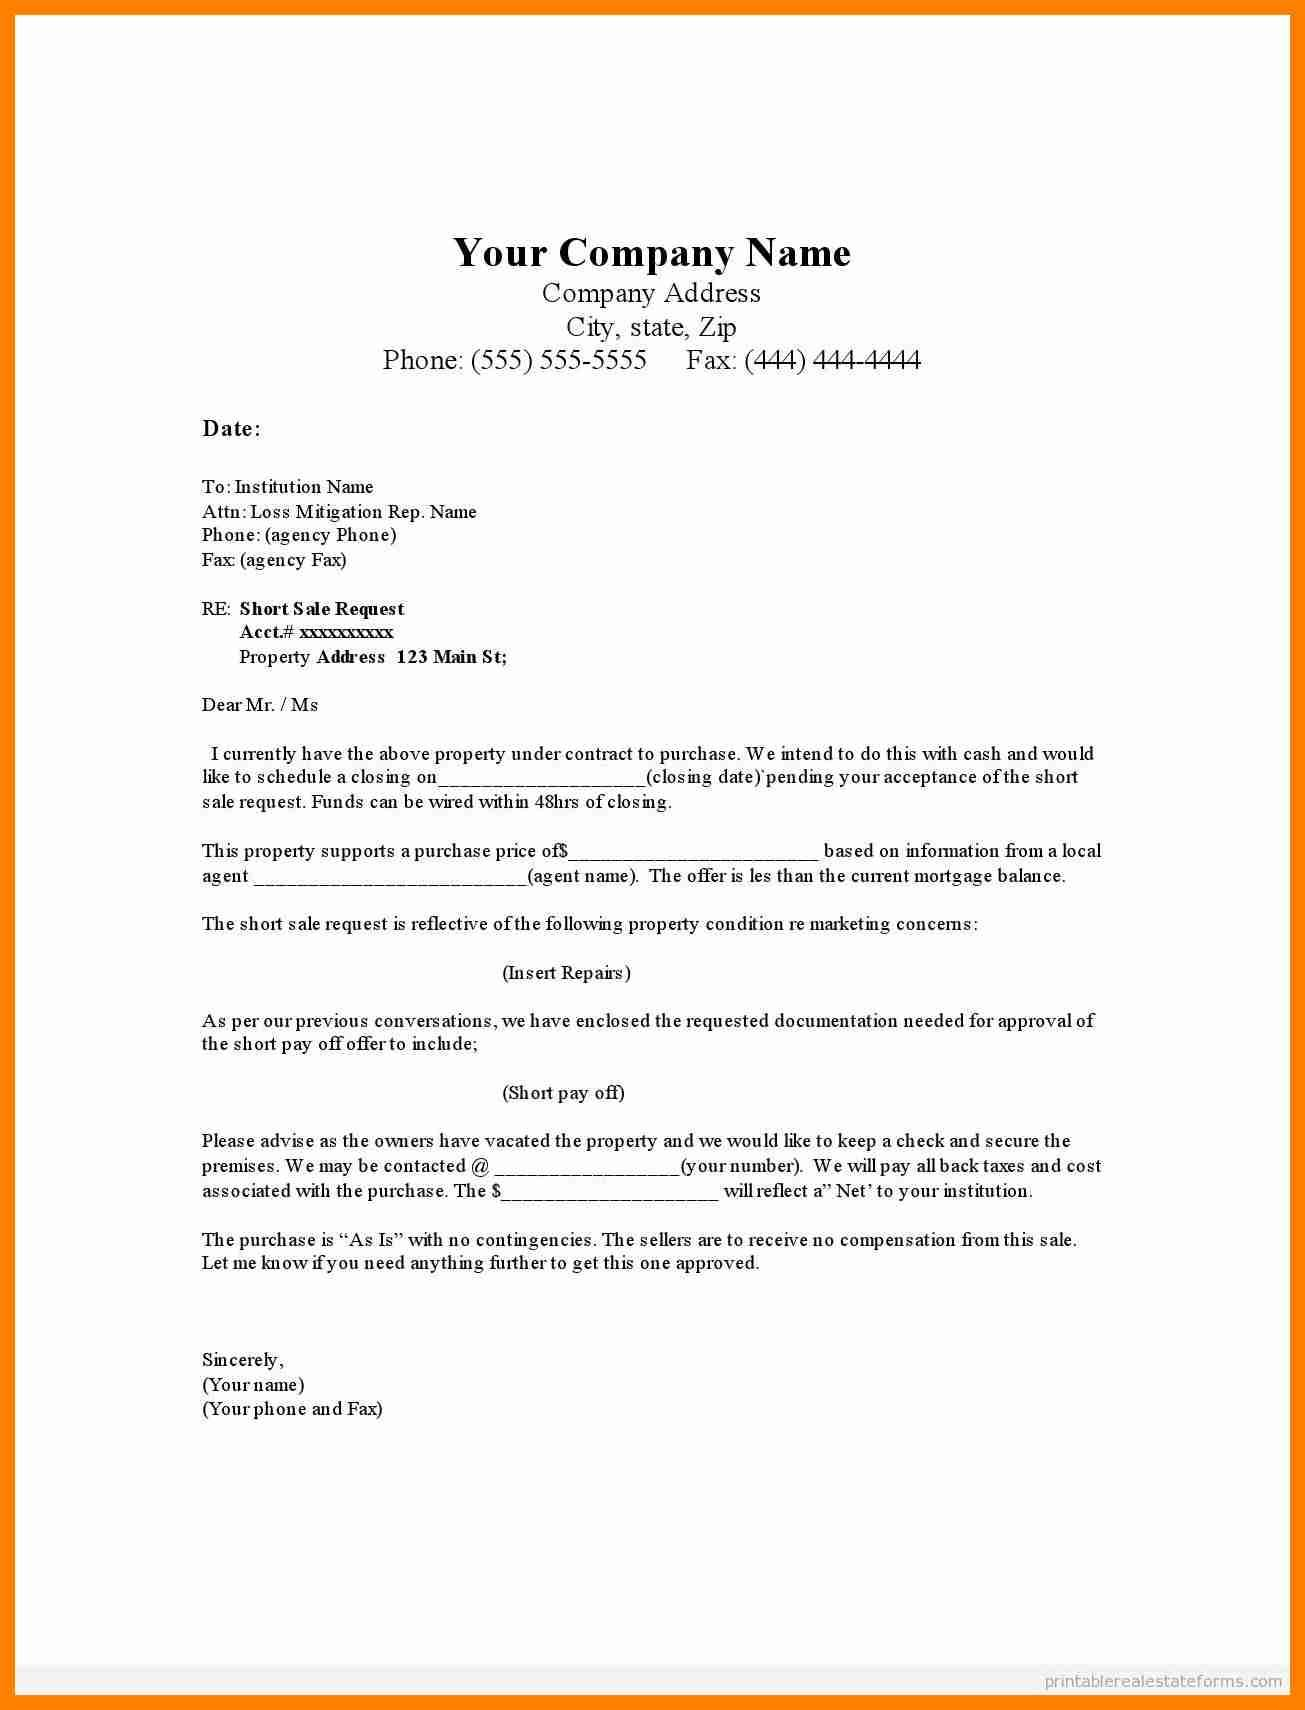 Letter to home seller from buyer template collection letter templates letter to home seller from buyer template altavistaventures Gallery